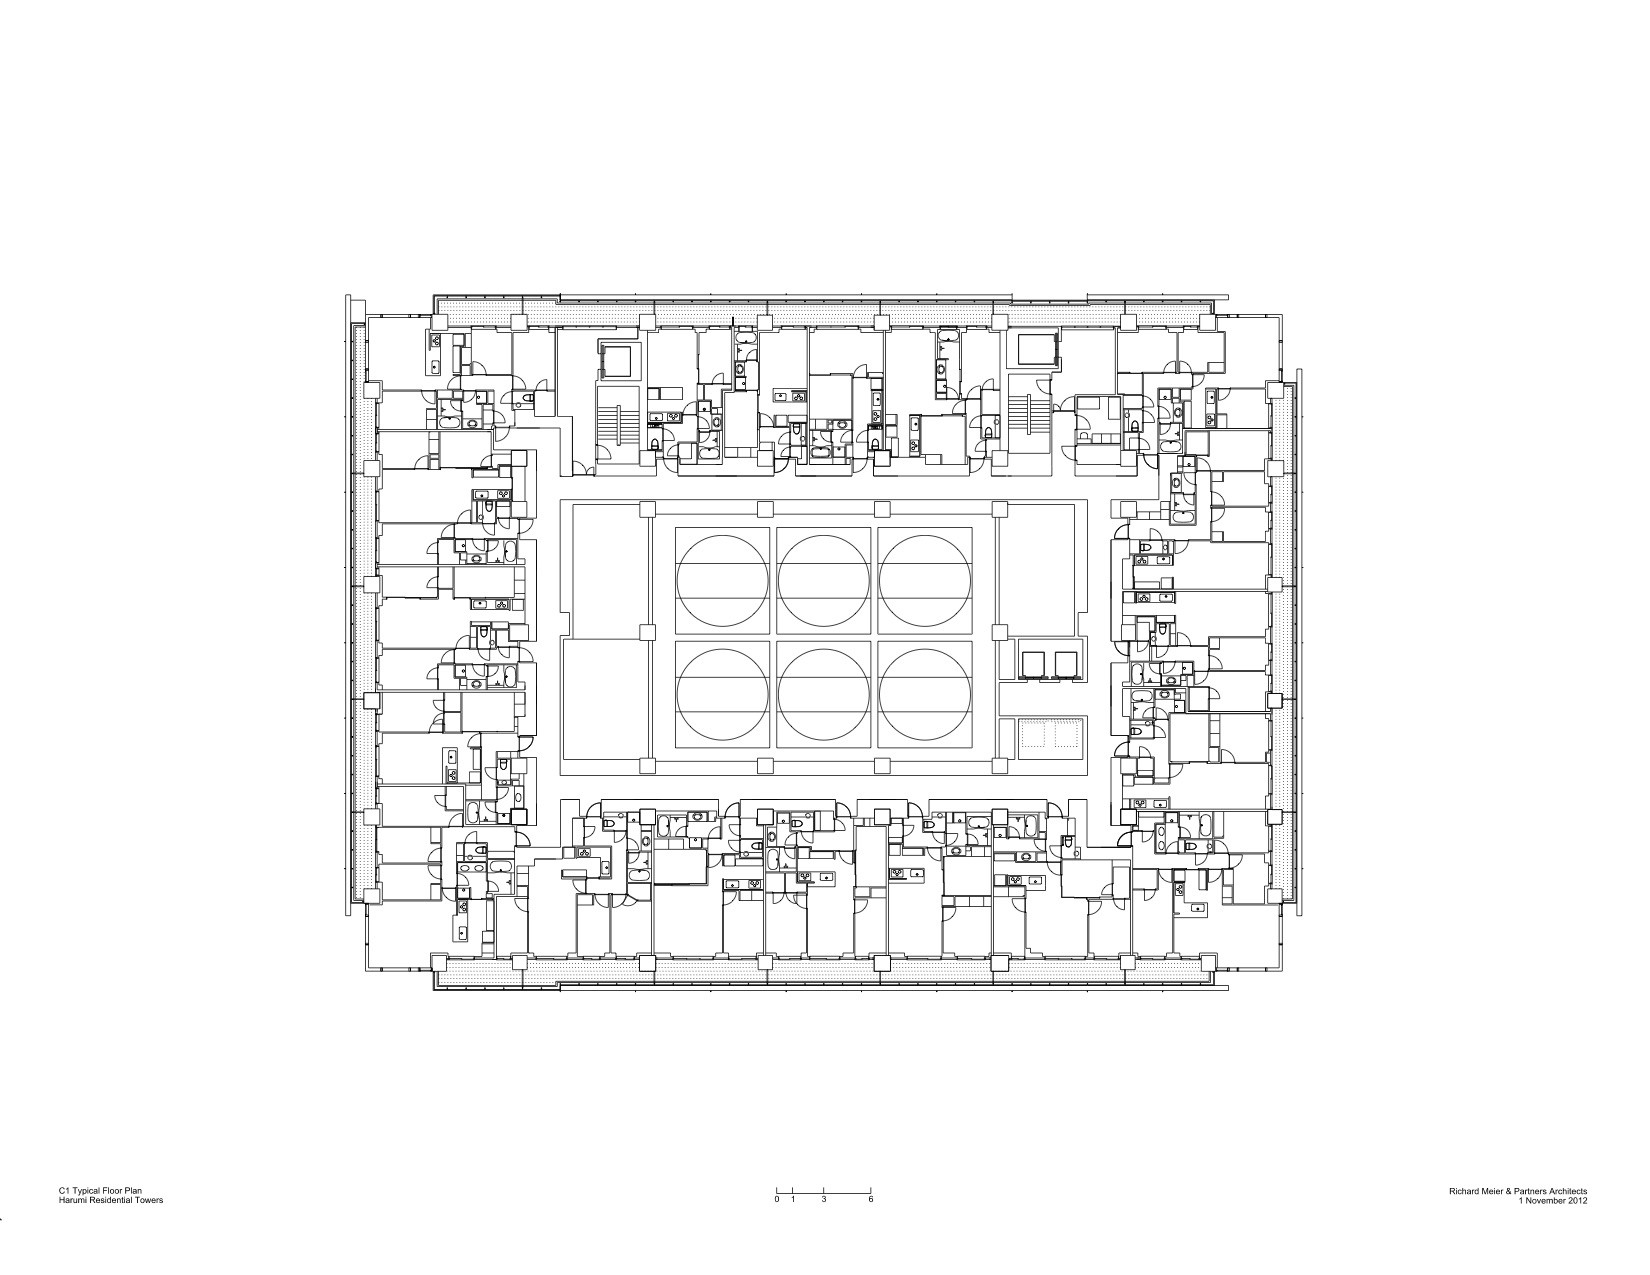 Harumi residential tower richard meier partners architects 11 16 typical floor plan